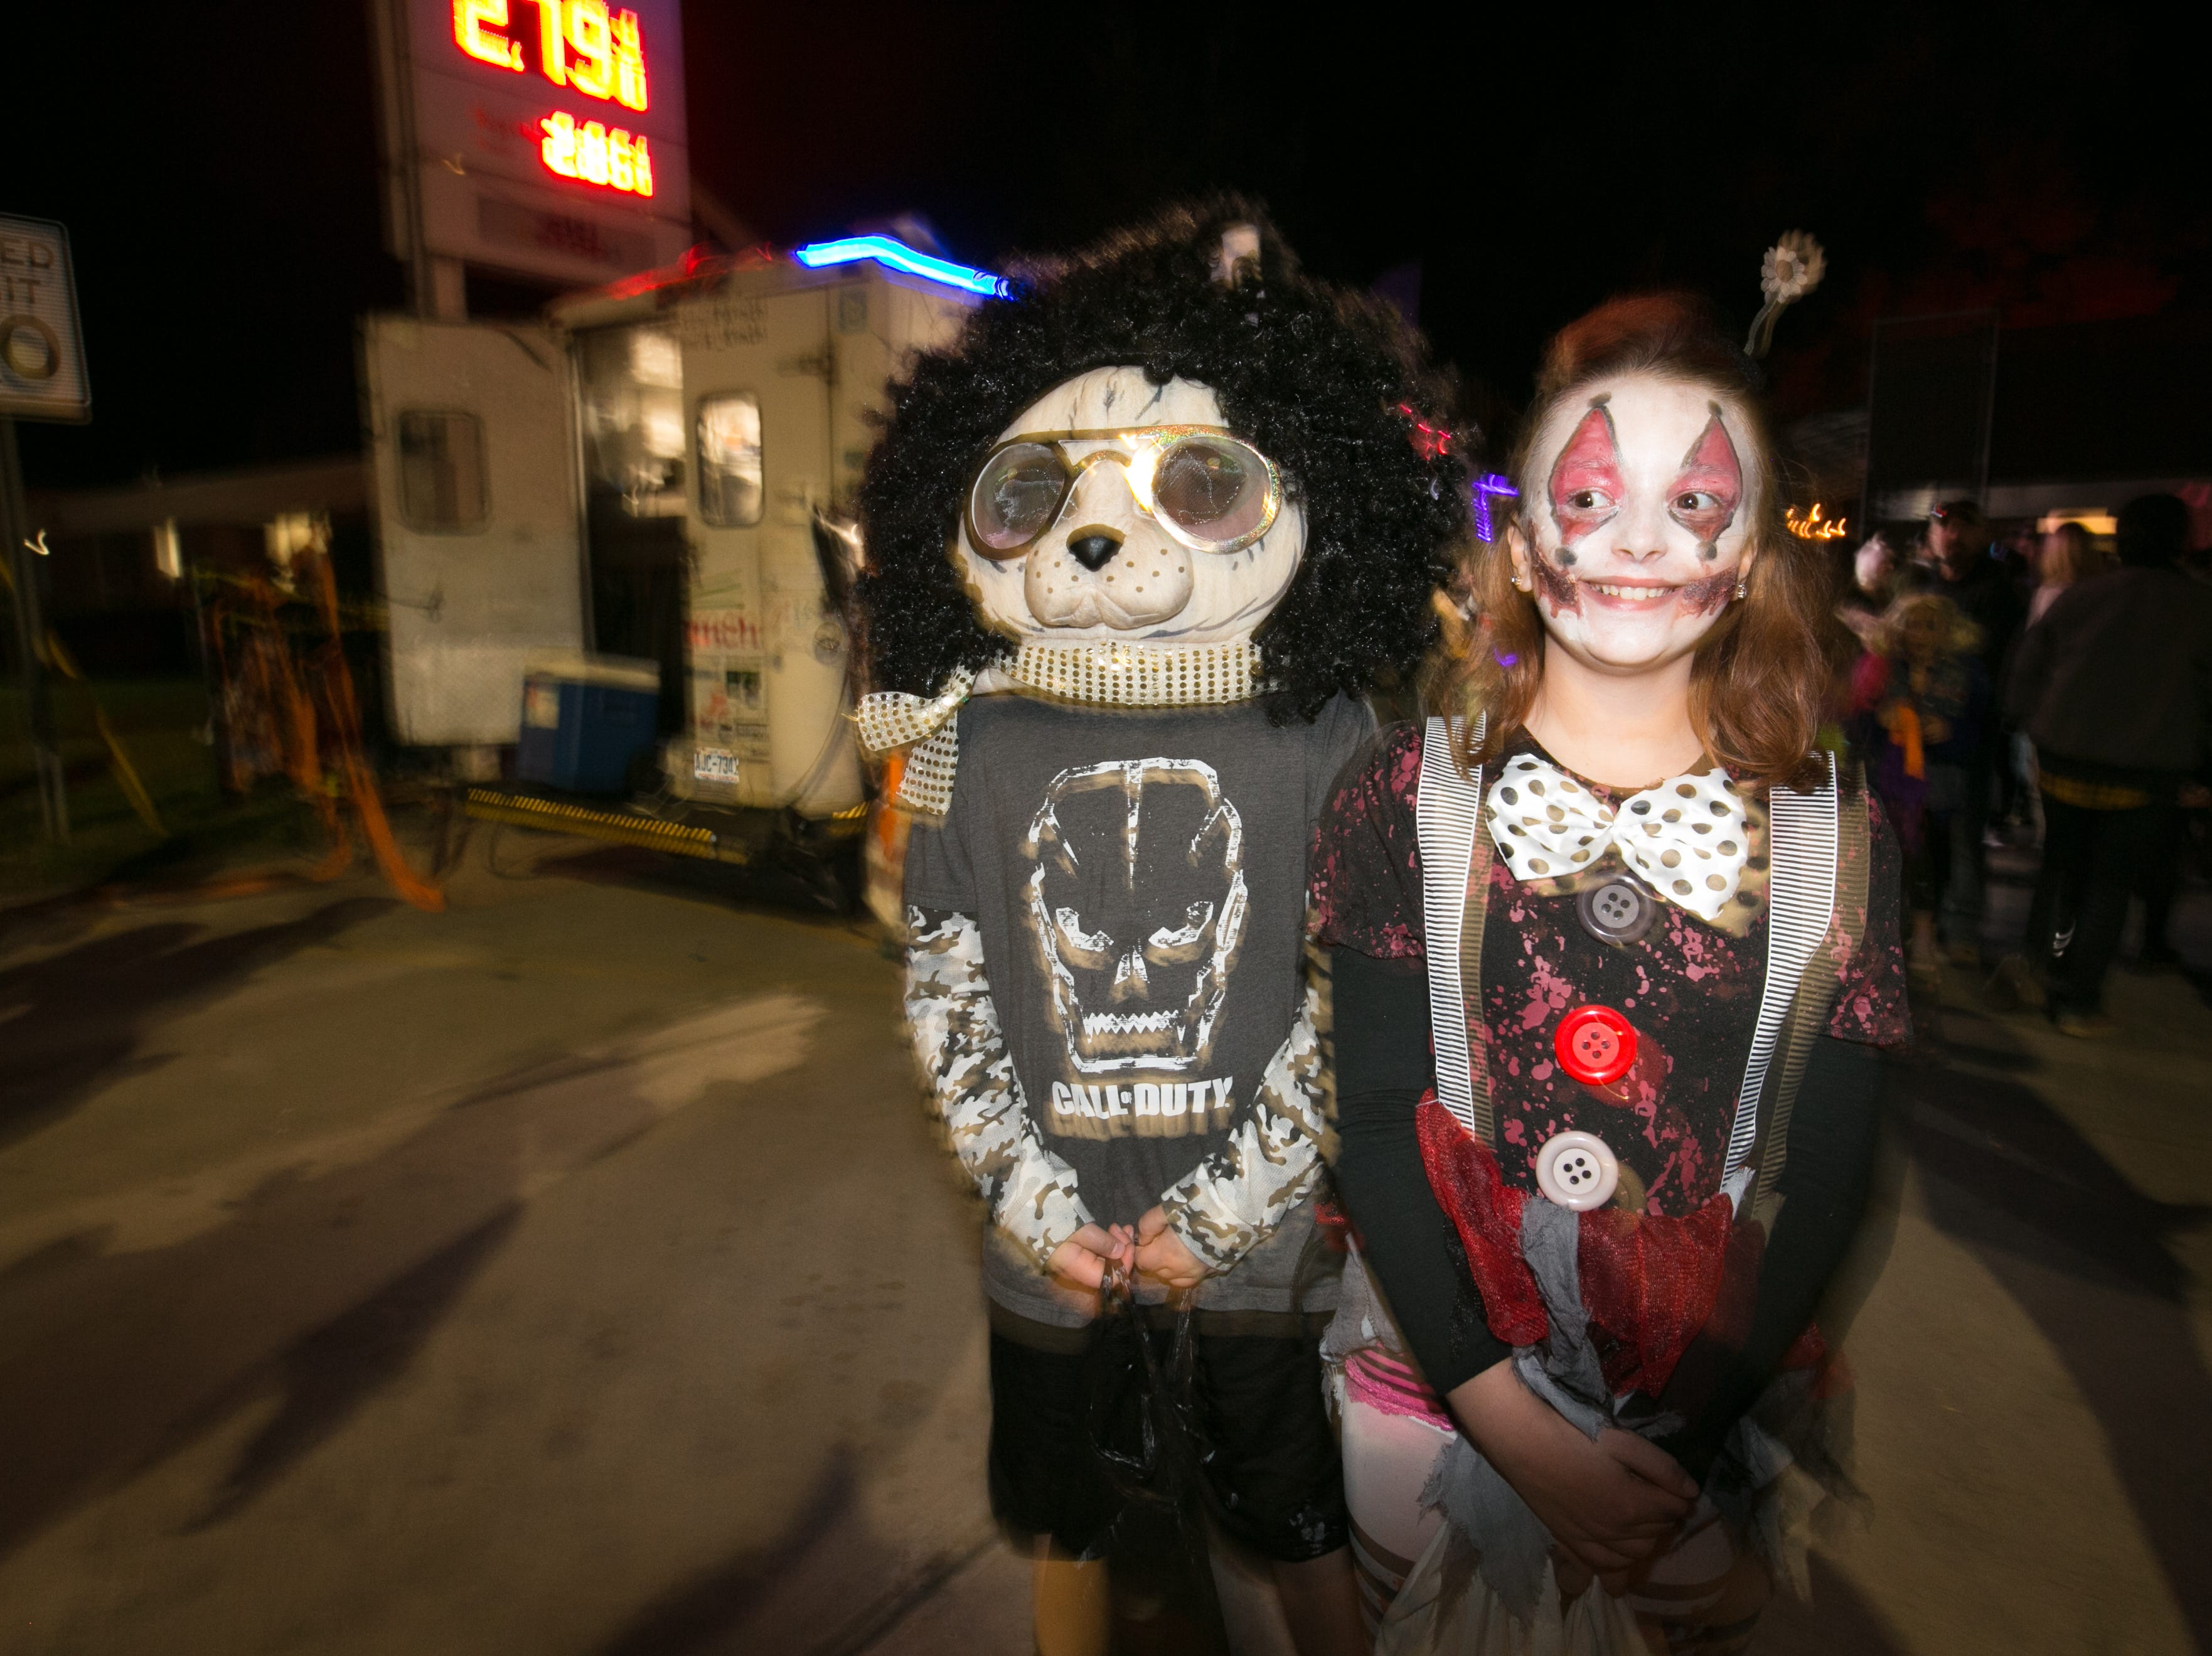 Halloween celebrations at the Brew Pump in West Asheville on Oct. 31, 2018.